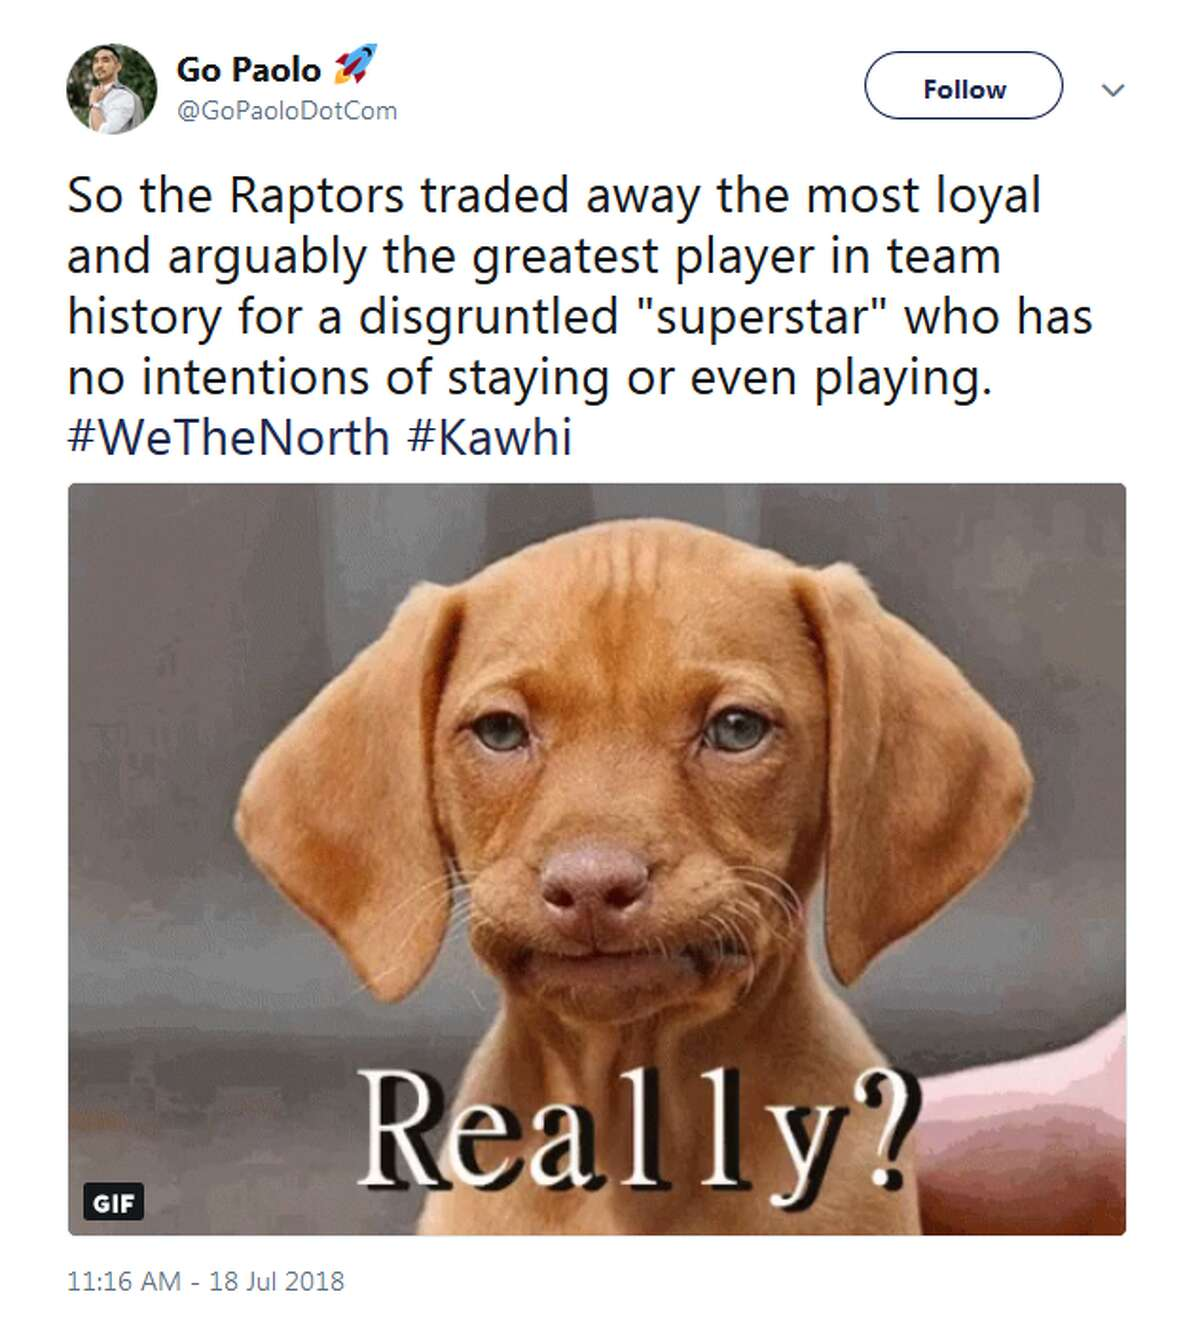 @GoPaoloDotCom: So the Raptors traded away the most loyal and arguably the greatest player in team history for a disgruntled